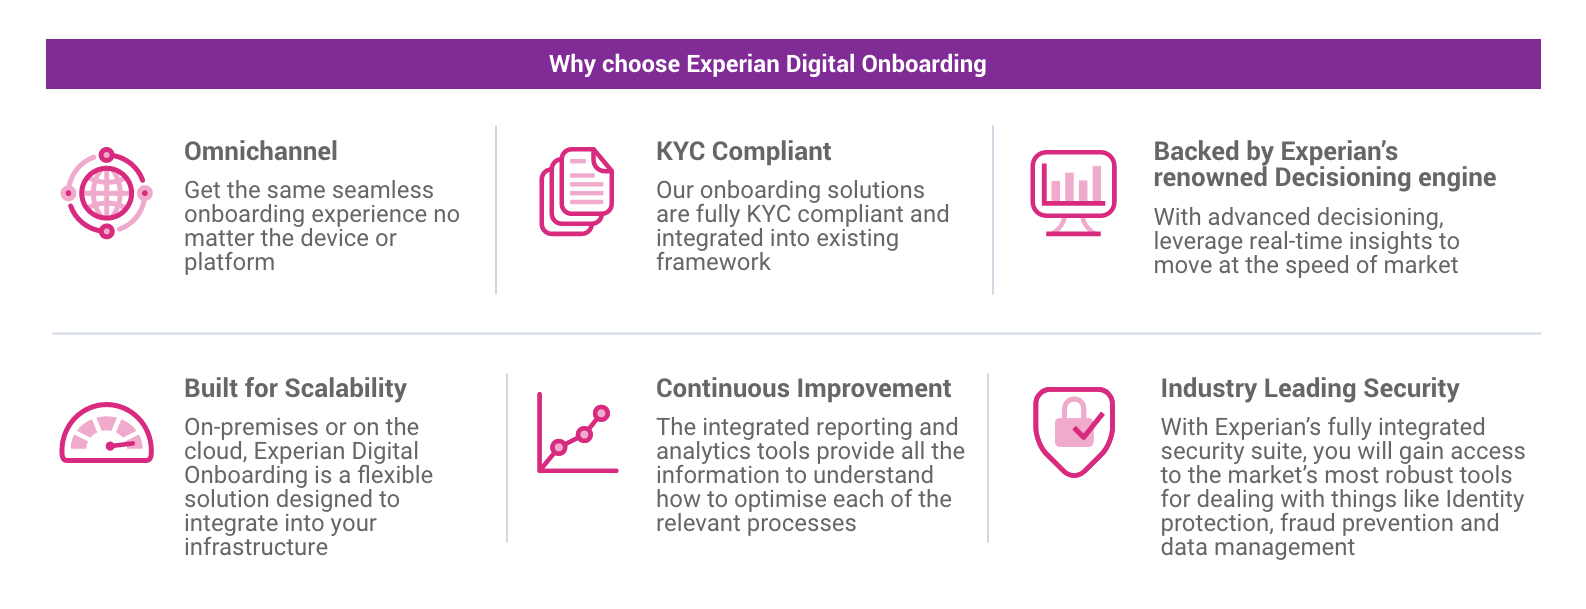 Why Choose Experian Digital Onboarding Infographic - Desktop Version